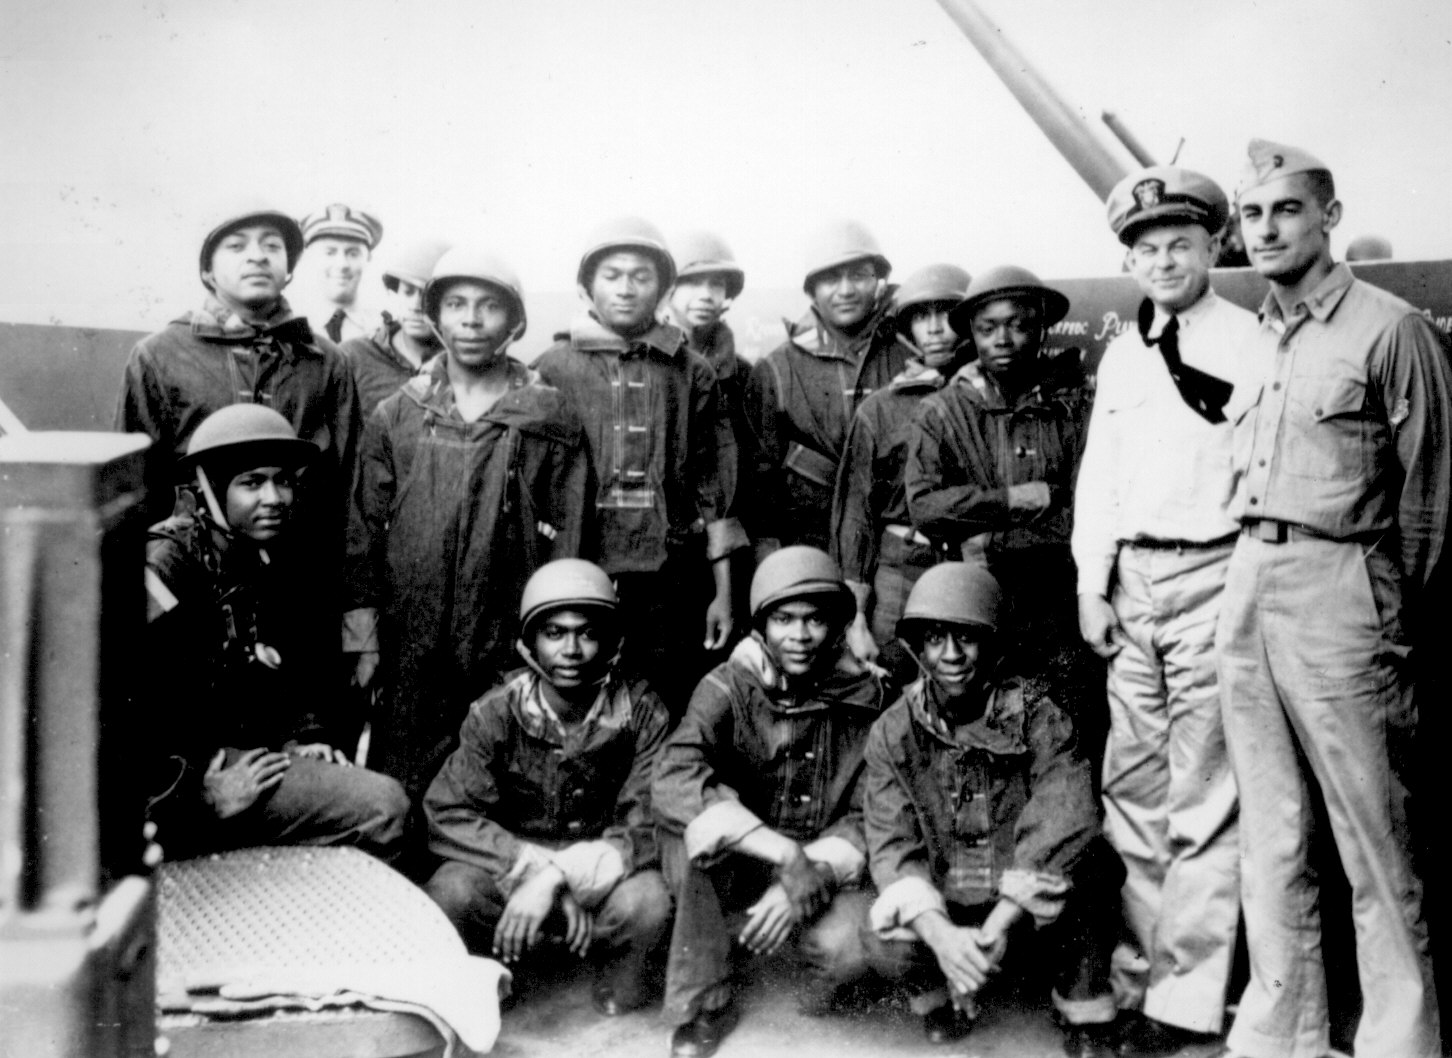 african americans as sailors and soldiers African americans also served as gunners, sailors on privateers and in the continental navy during the revolution while the majority of blacks who contributed to the struggle for independence performed routine jobs, a few, such as james lafayette, gained renown serving as spies or orderlies for well-known military leaders.